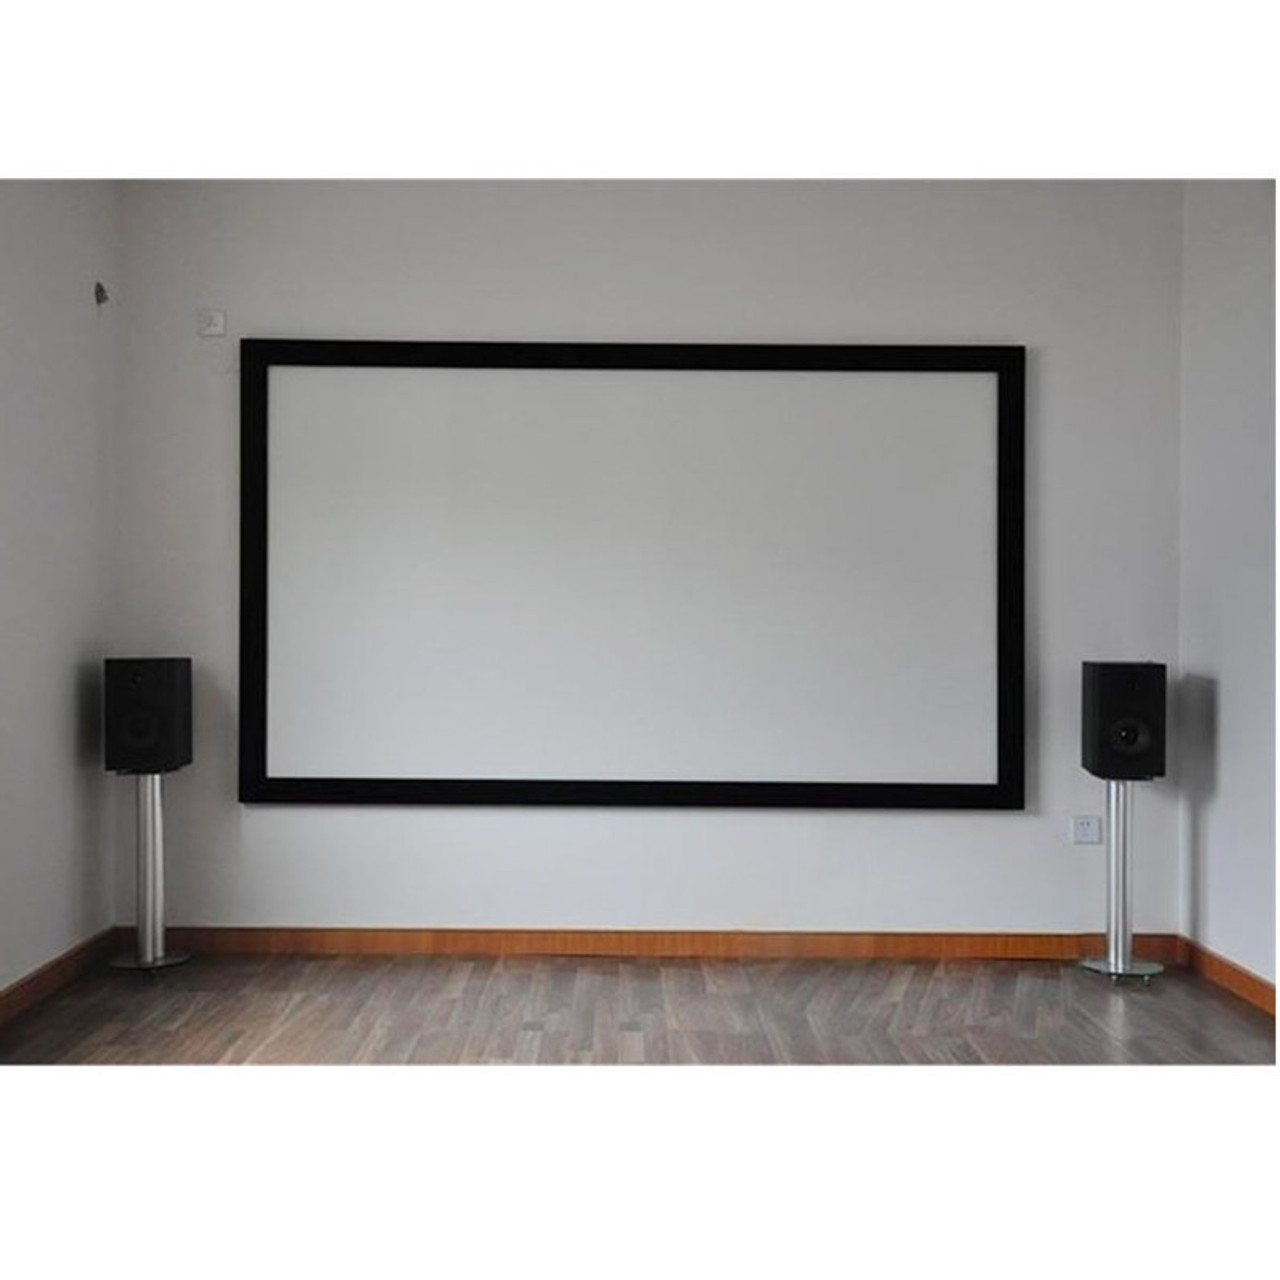 Projection Screen Projector Curtain Projector Screen Portable 16:10 120 Inch